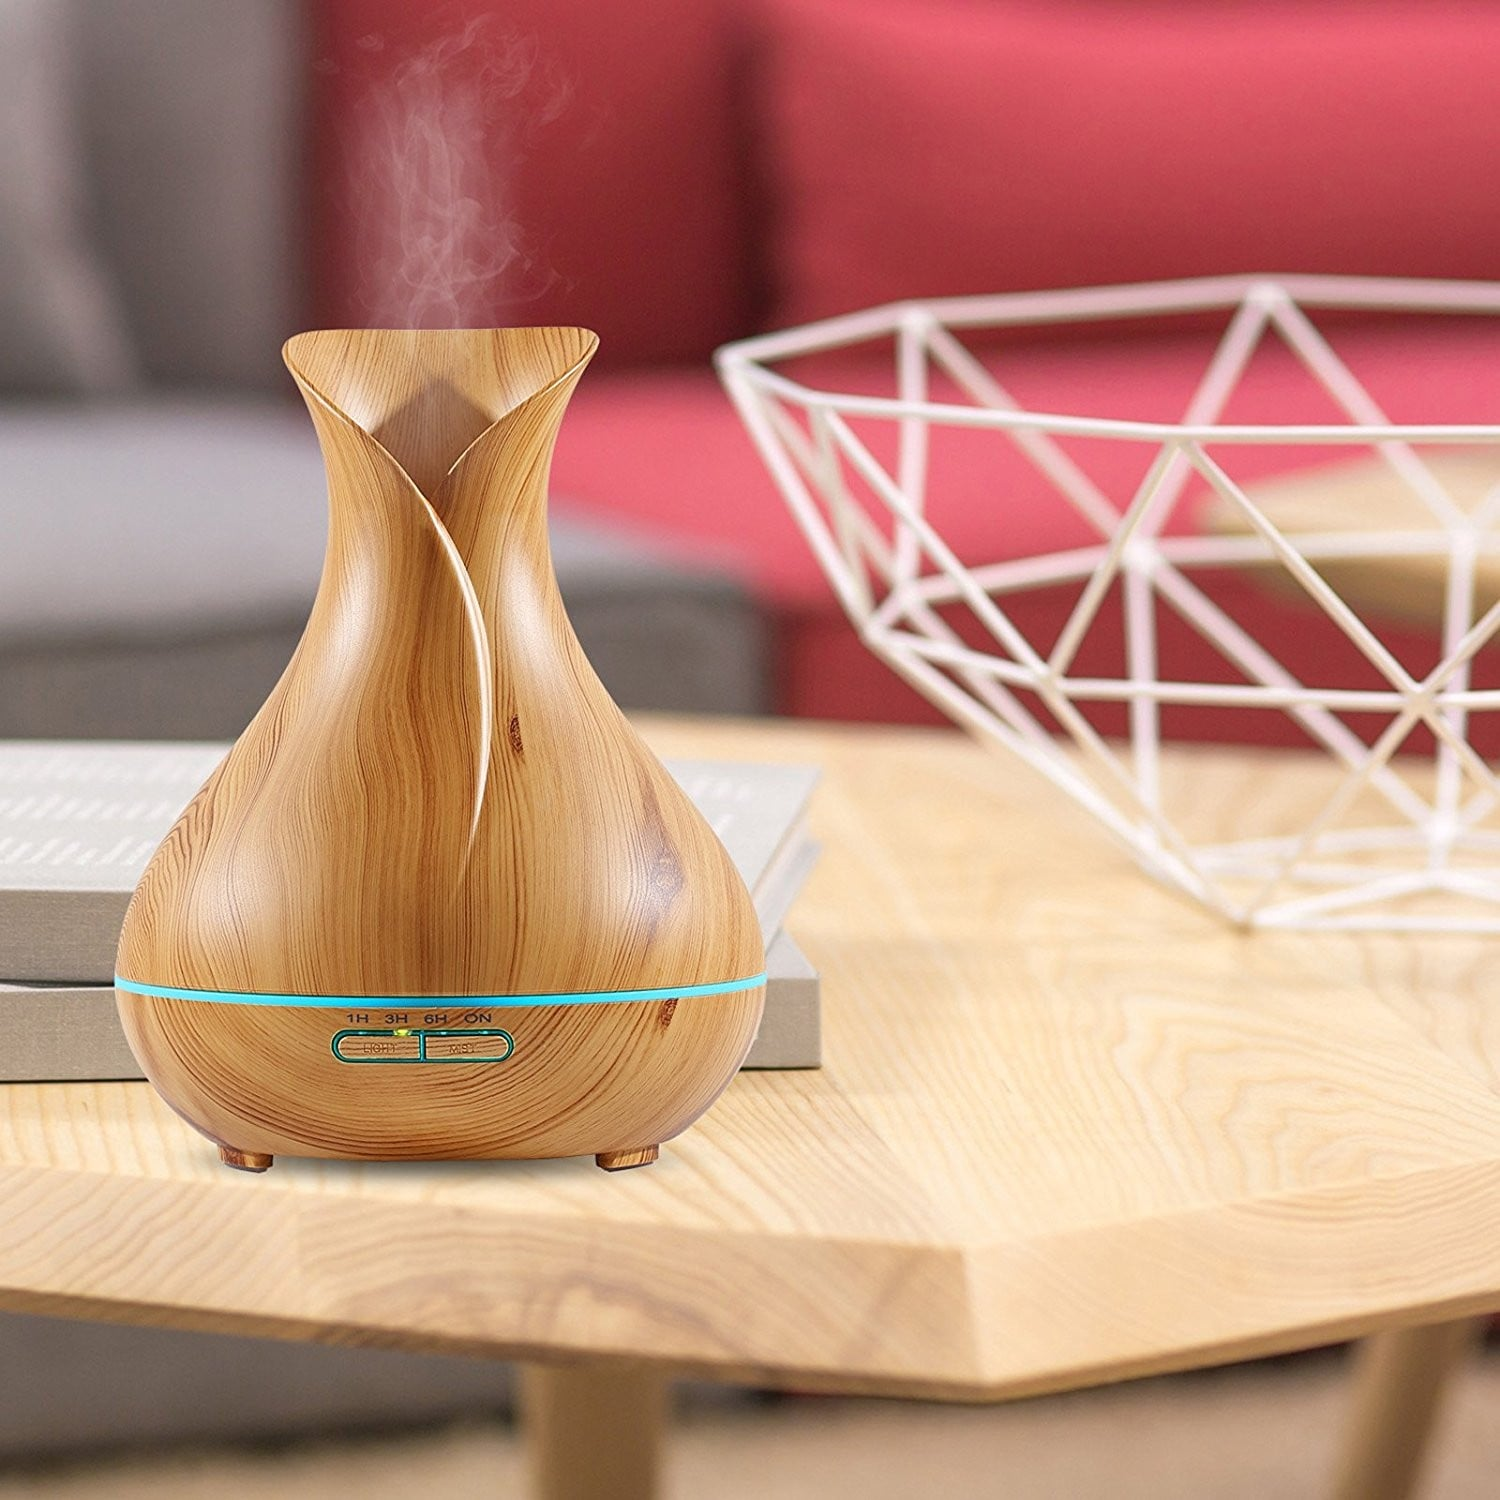 Are Room Humidifiers Necessary? Consider These 3 Things